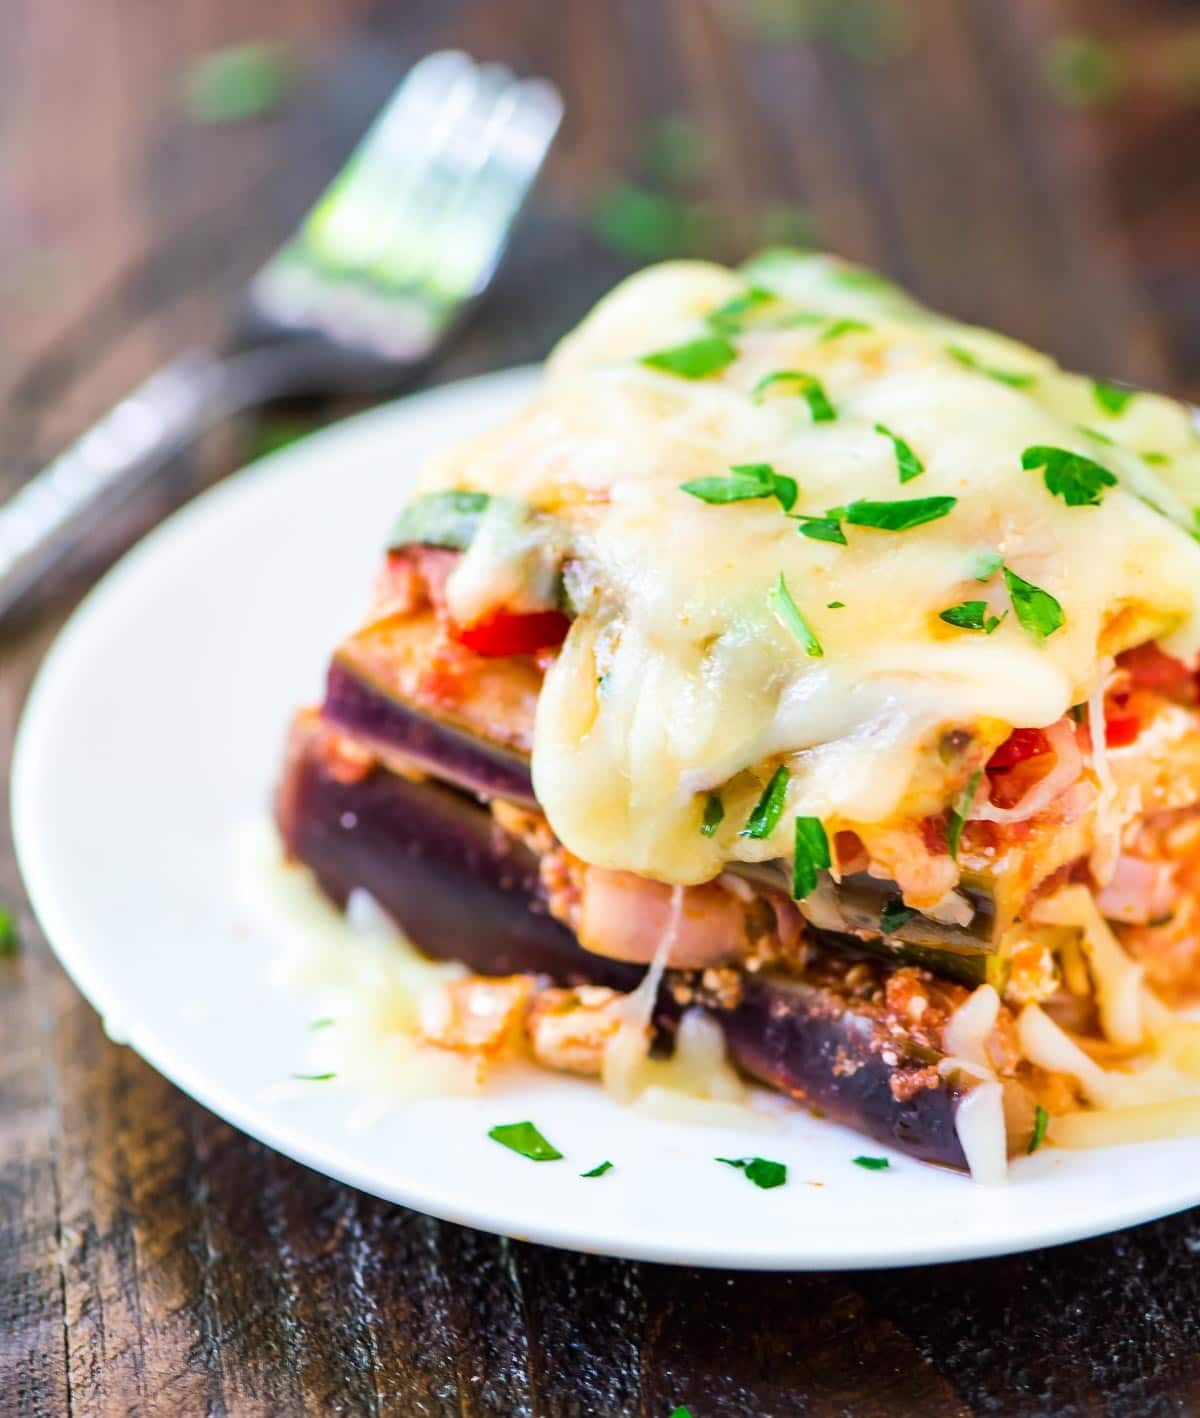 Easy Crock Pot Vegetarian Lasagna. The BEST way to get your veggies and our whole family loved it! No noodles — just zucchini, eggplant, and cheesy goodness — Low carb, high protein, and you'll never miss the pasta! @wellplated